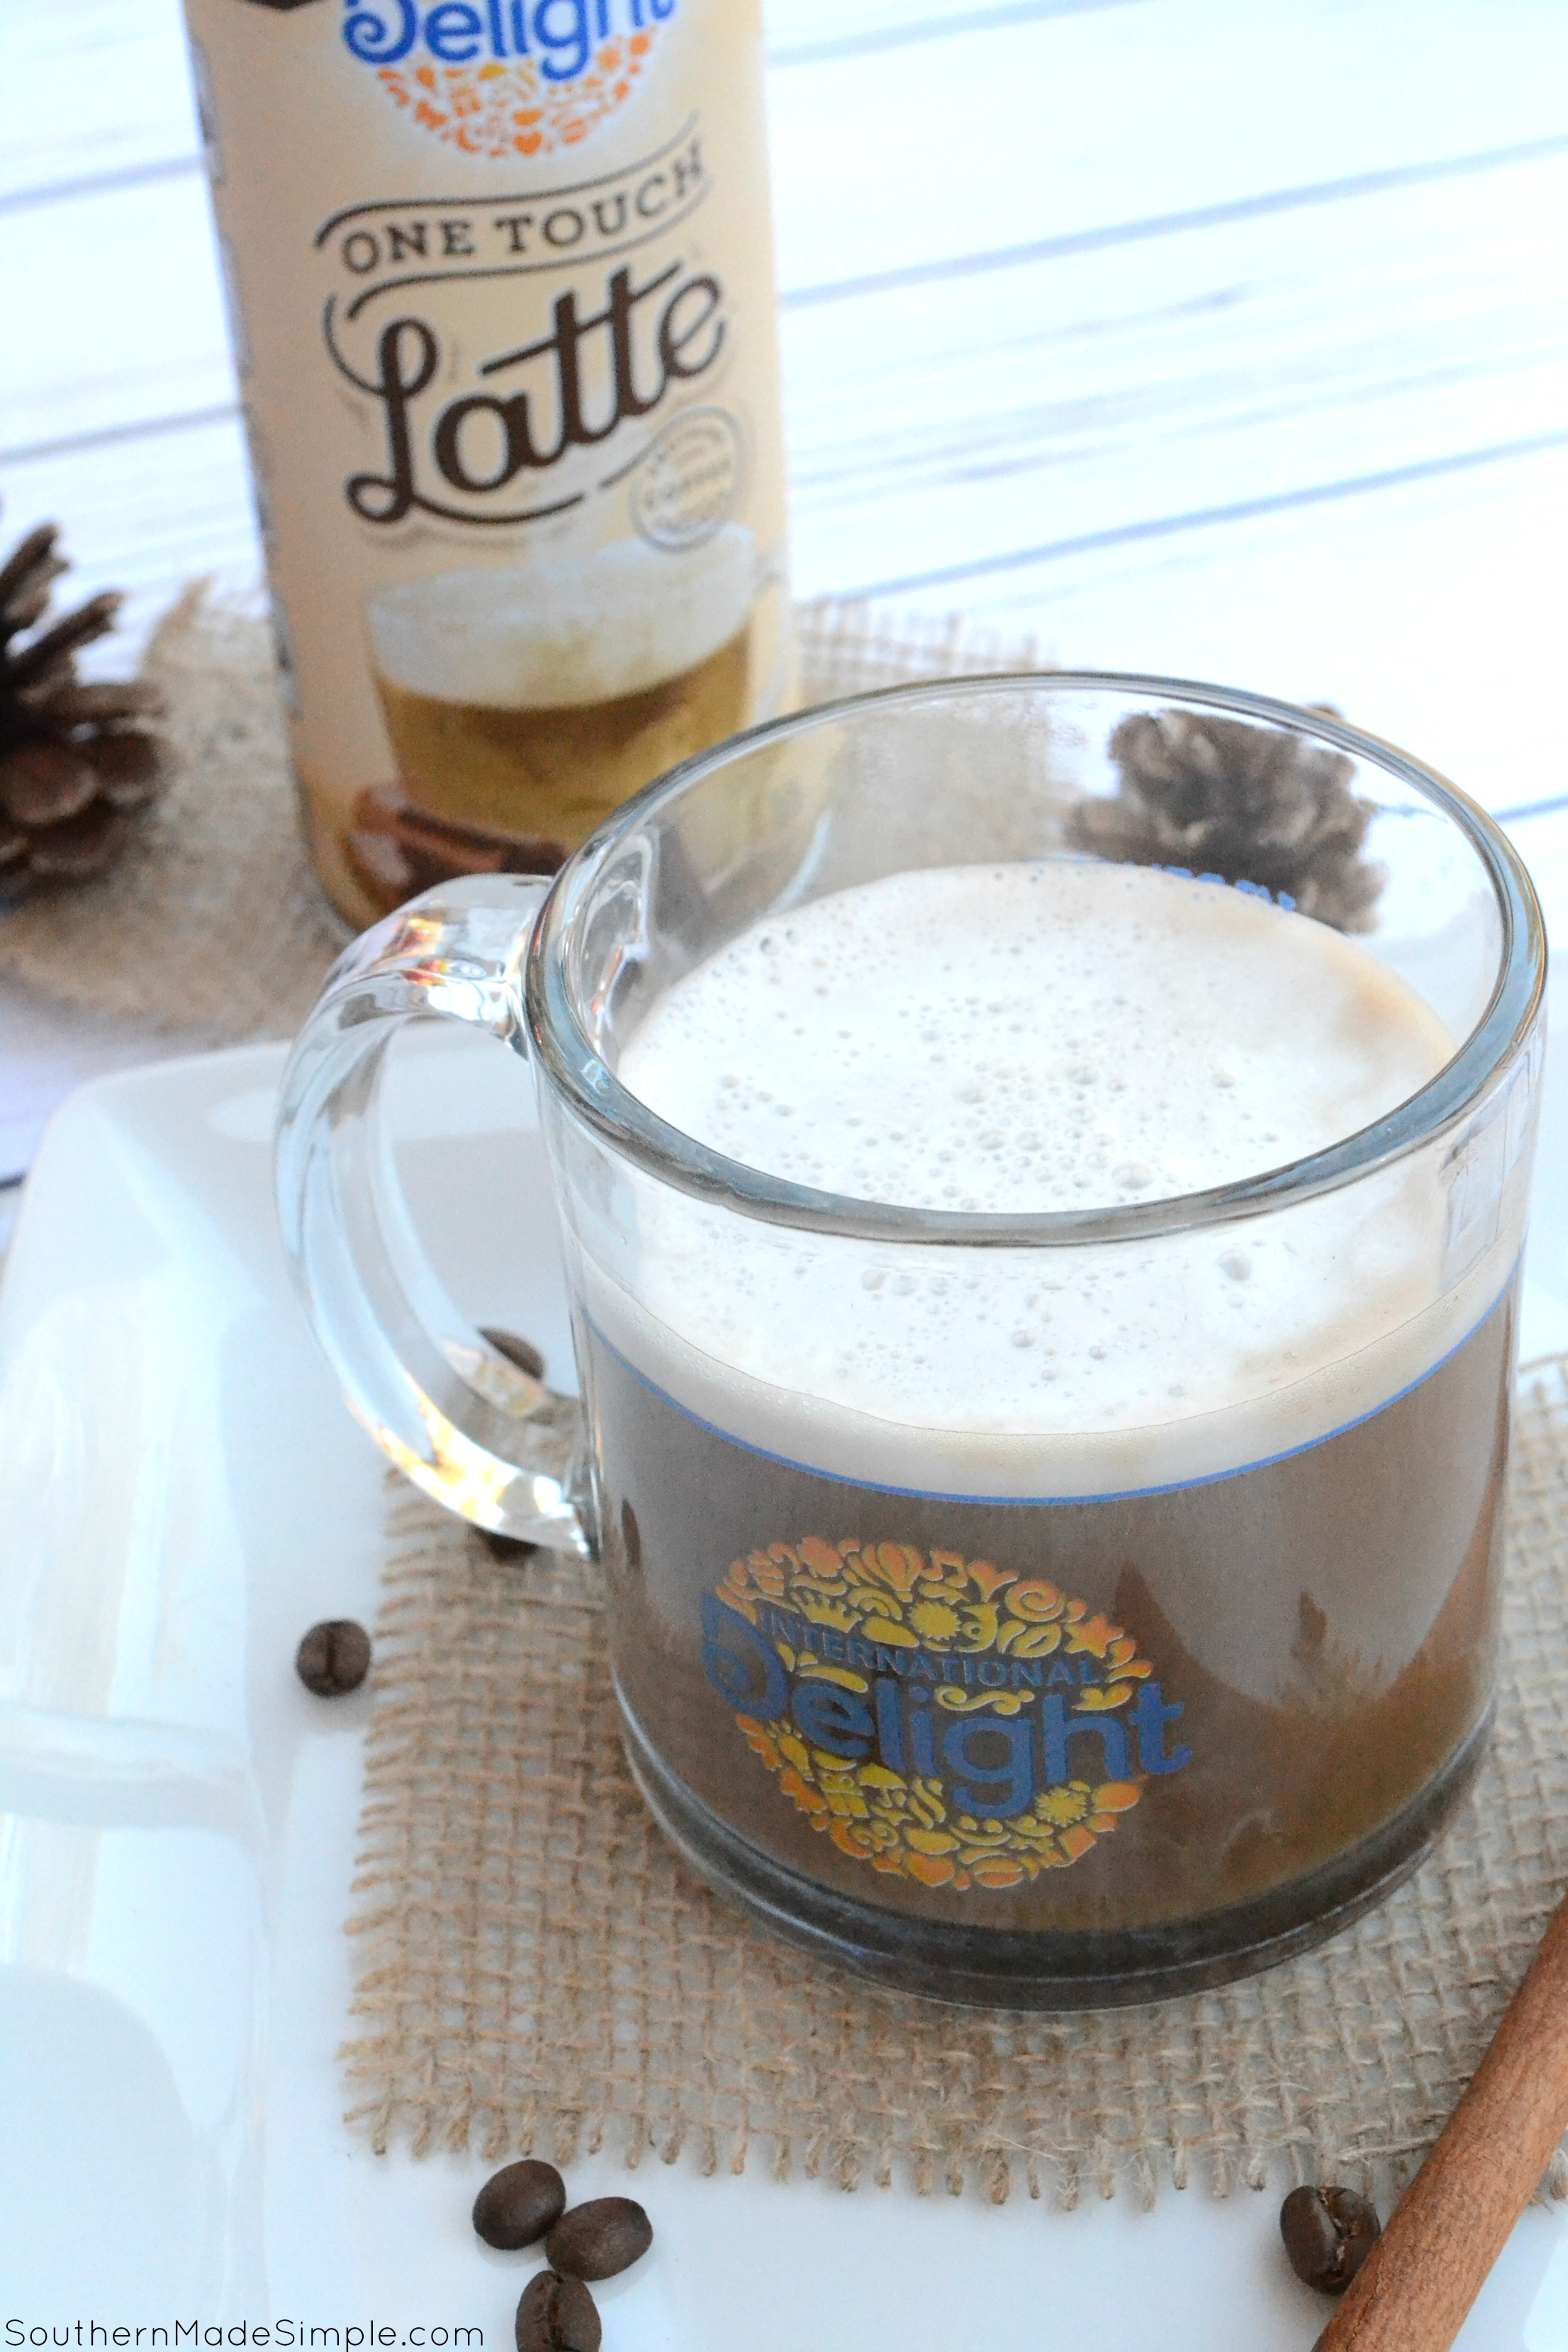 If you love to get your hands on a tall warm latte but can't afford to pay those crazy coffee shop prices? Now you can make a latte at home in seconds with International Delight One Tough Latte! #LatteMadeEasy @Walmart